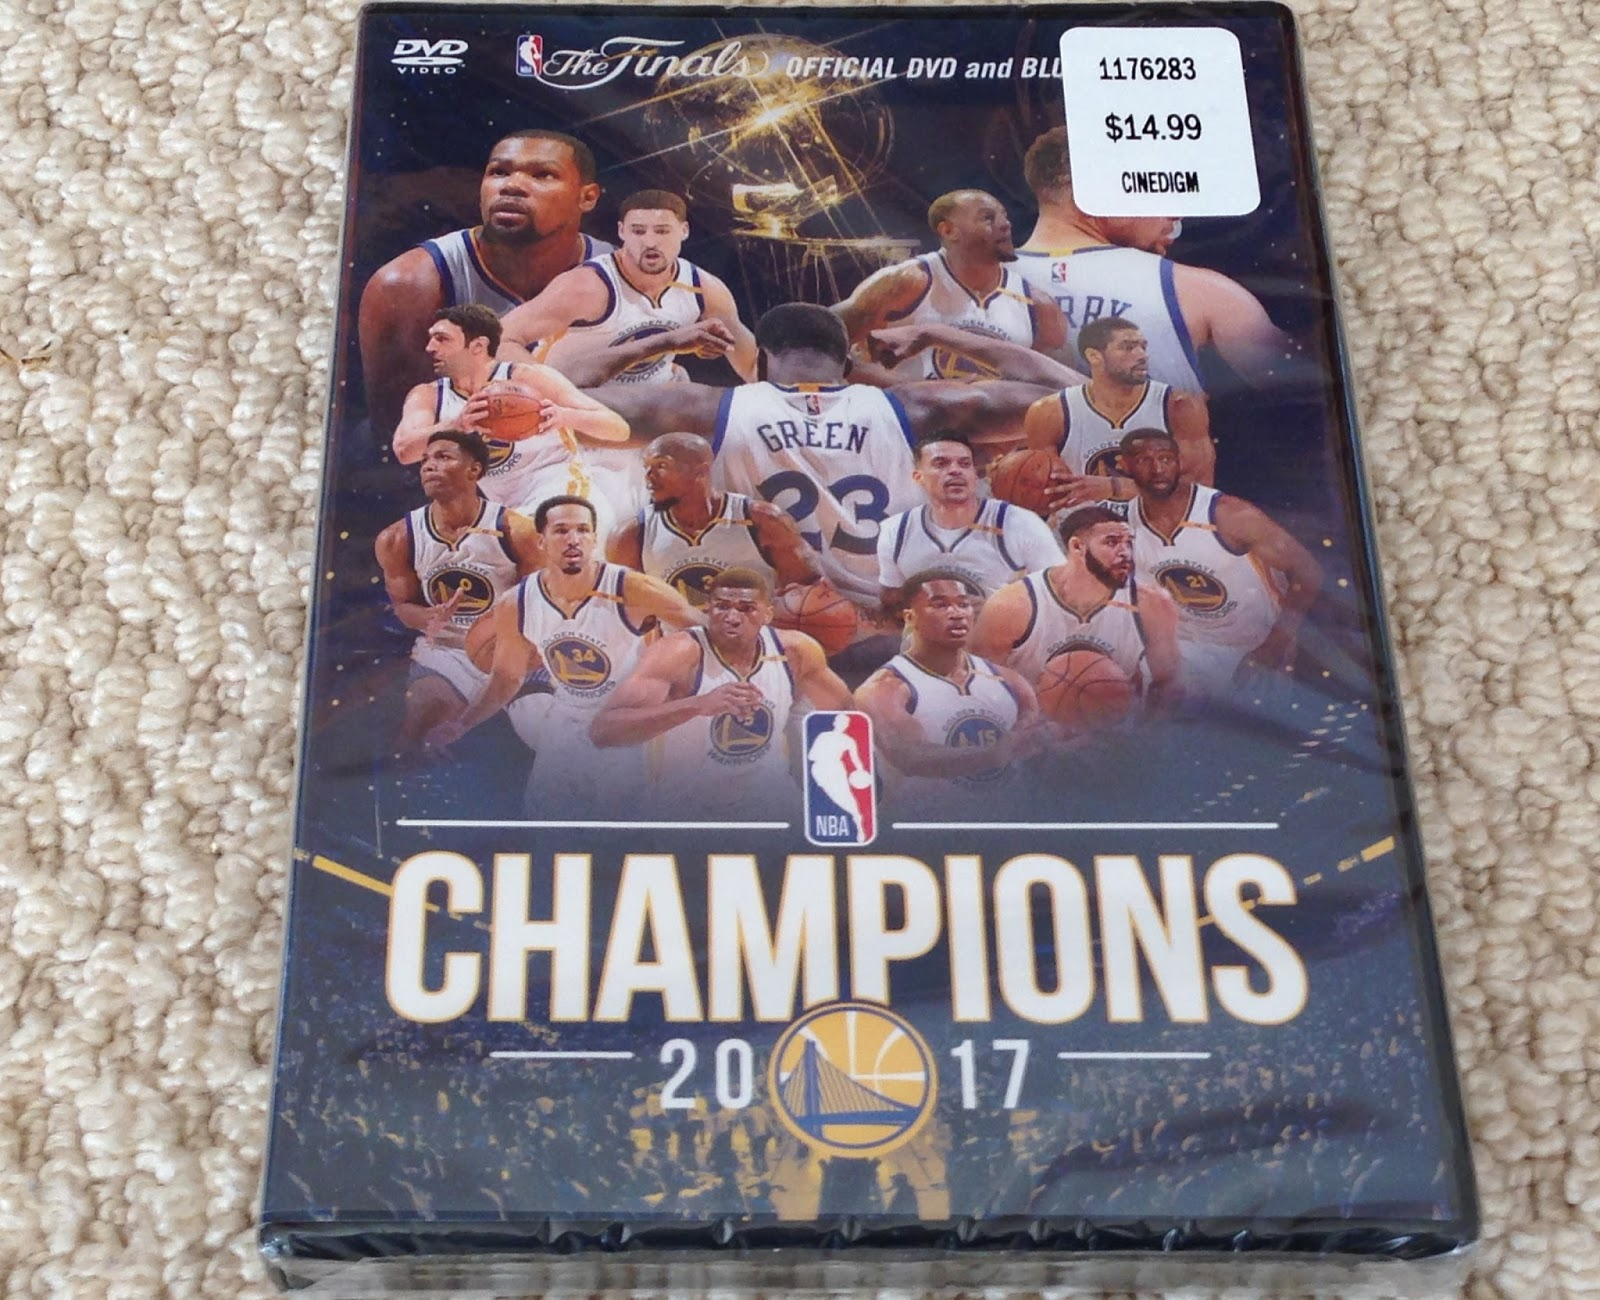 Relive the Warriors 2nd championship in 3 years with Golden State Warriors Official 2017 Championship DVD and Blue-ray